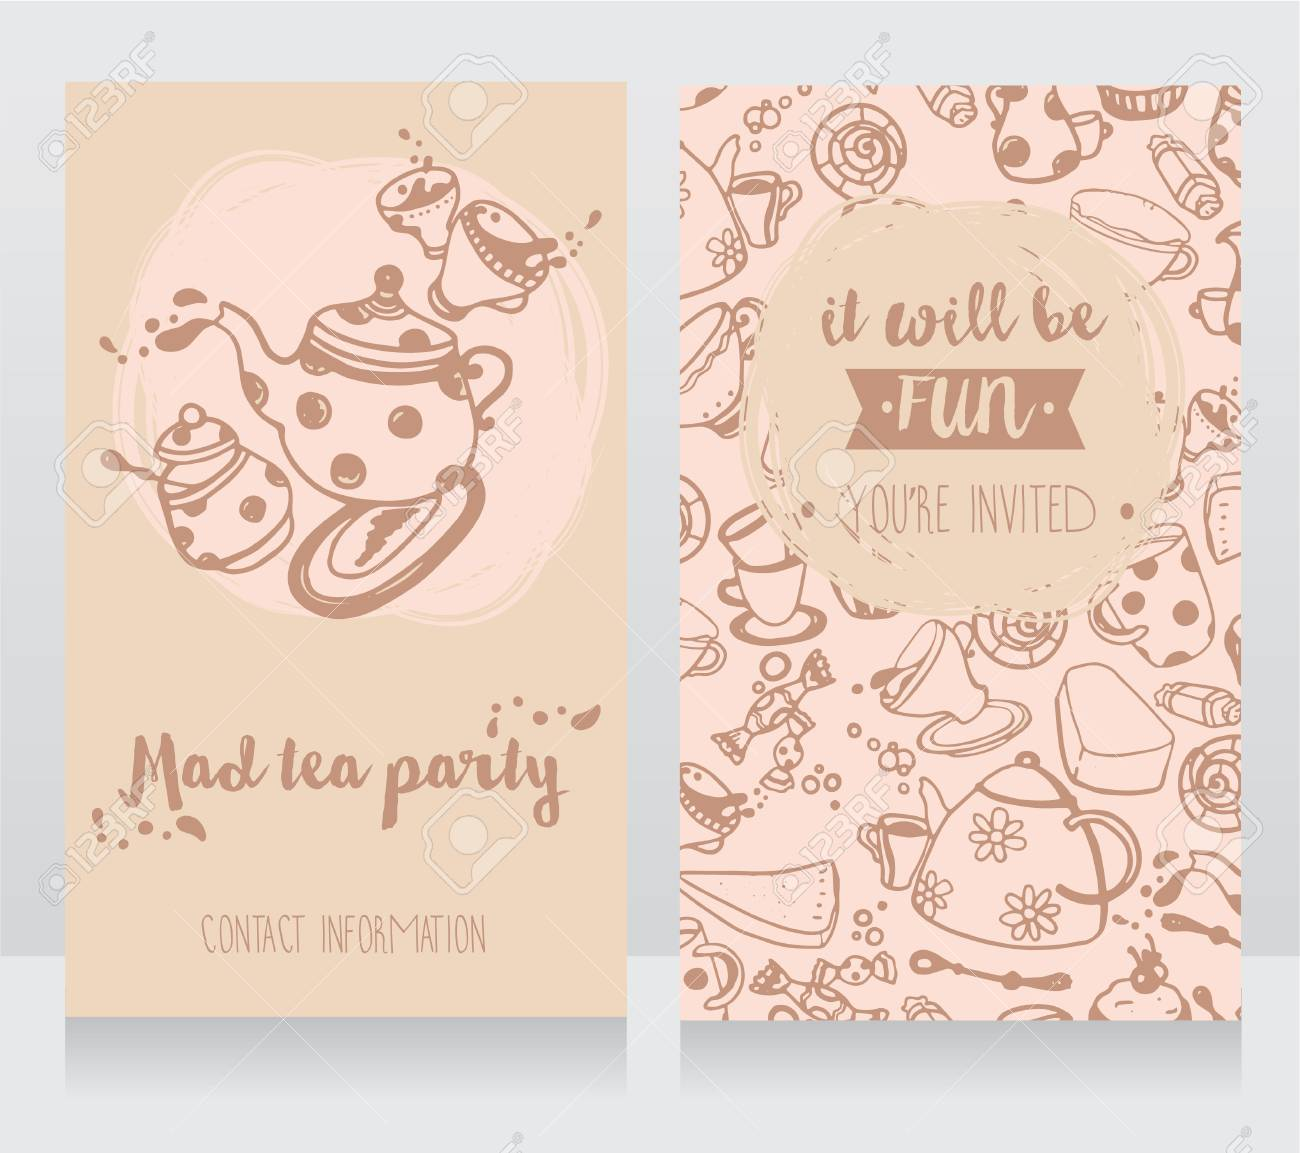 Invitation Card For Tea Party Or Cute Business Cards For Tea